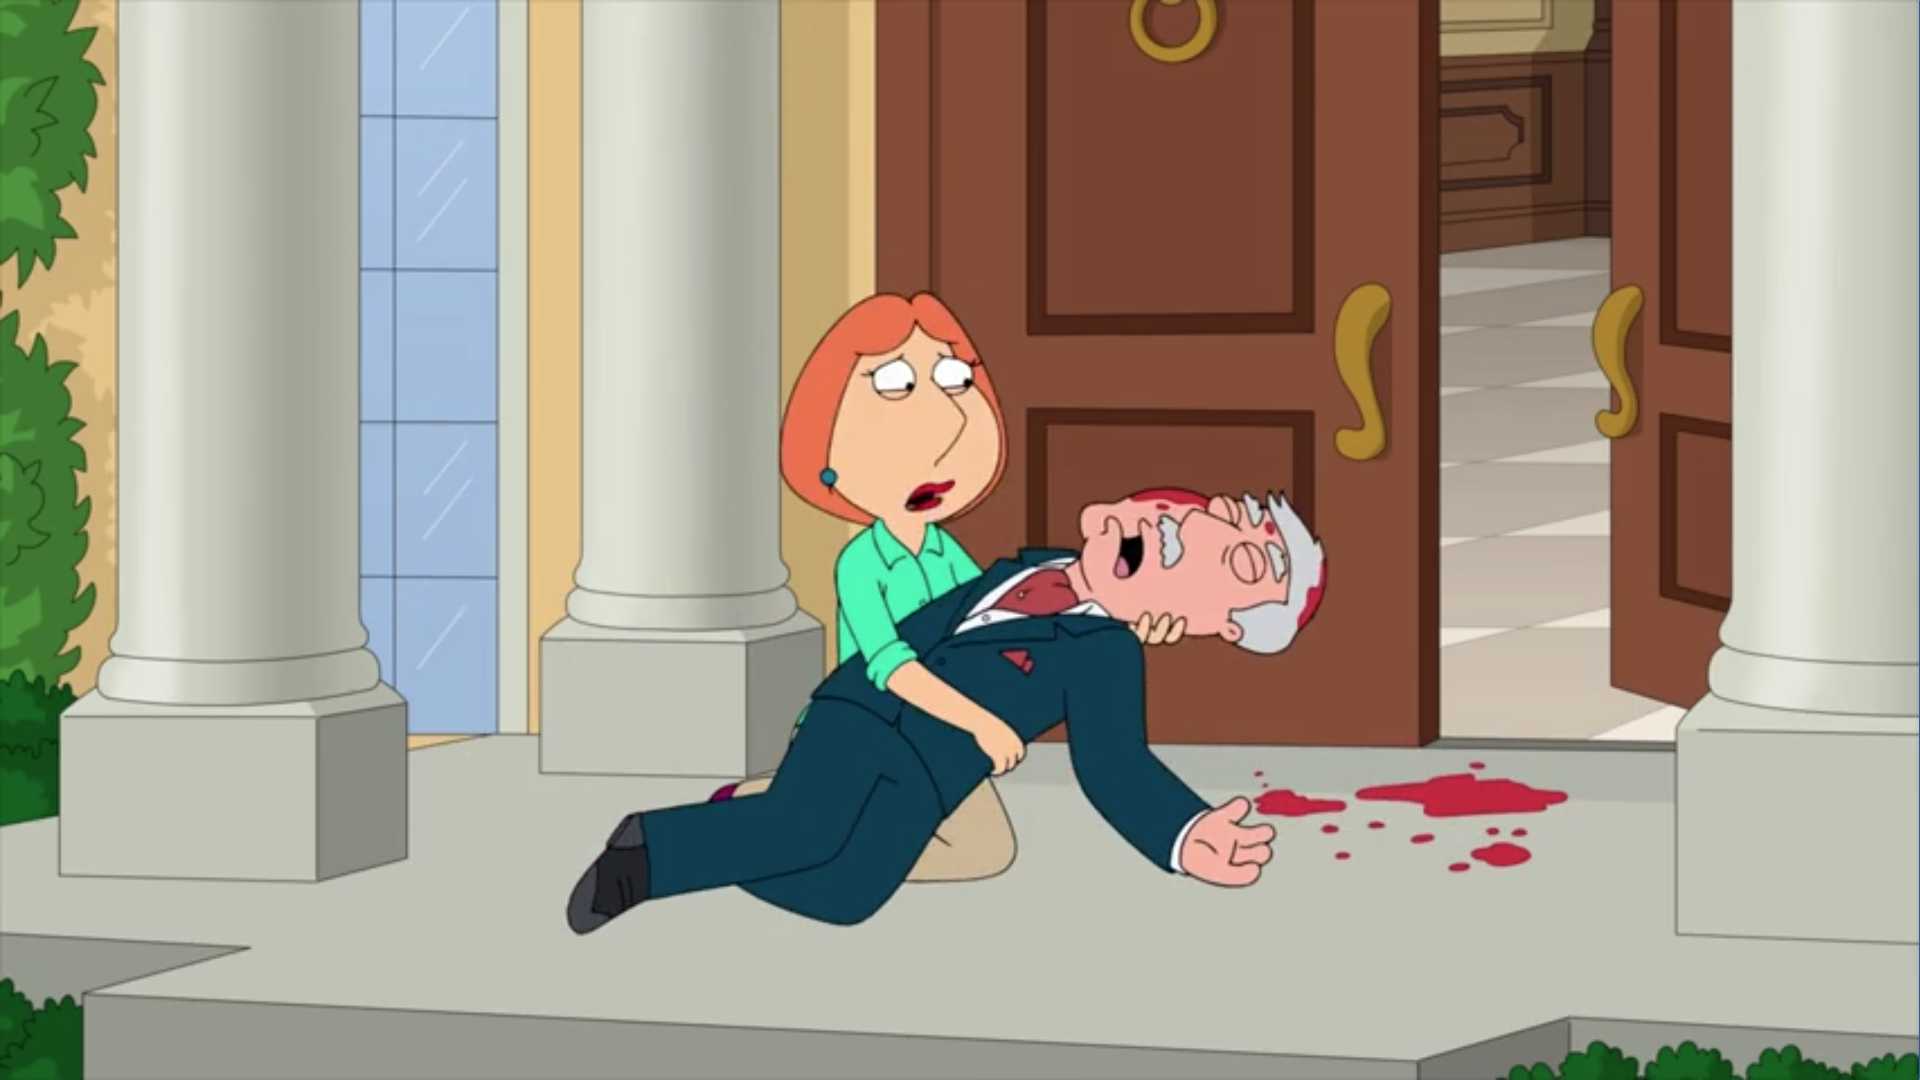 Lois and Carter's Relationship